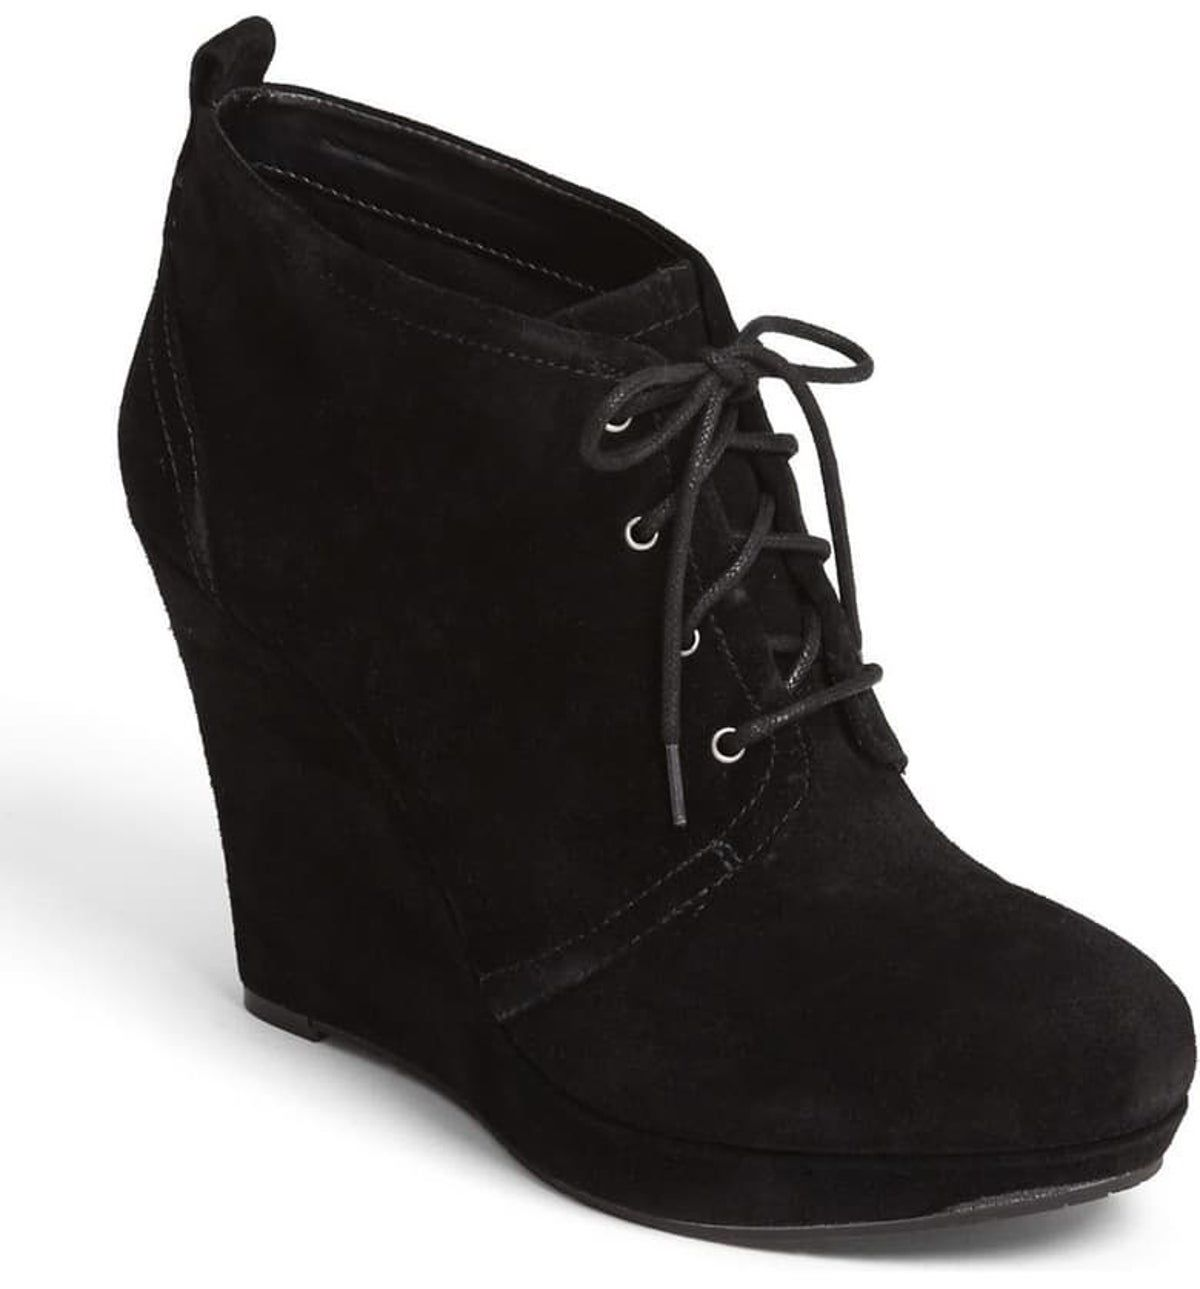 Wedge heel boots, Wedge ankle boots